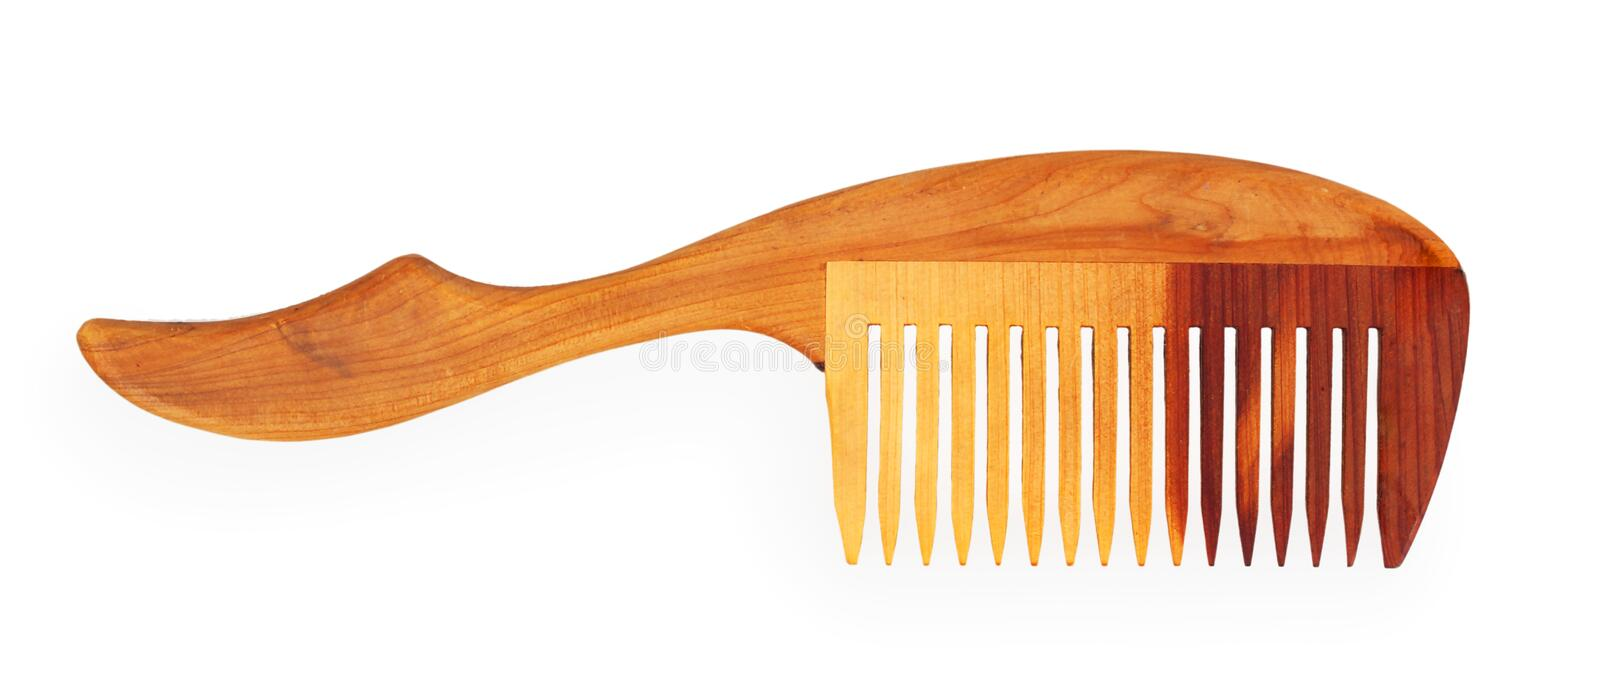 Wooden comb. Isolated on white background royalty free stock photo